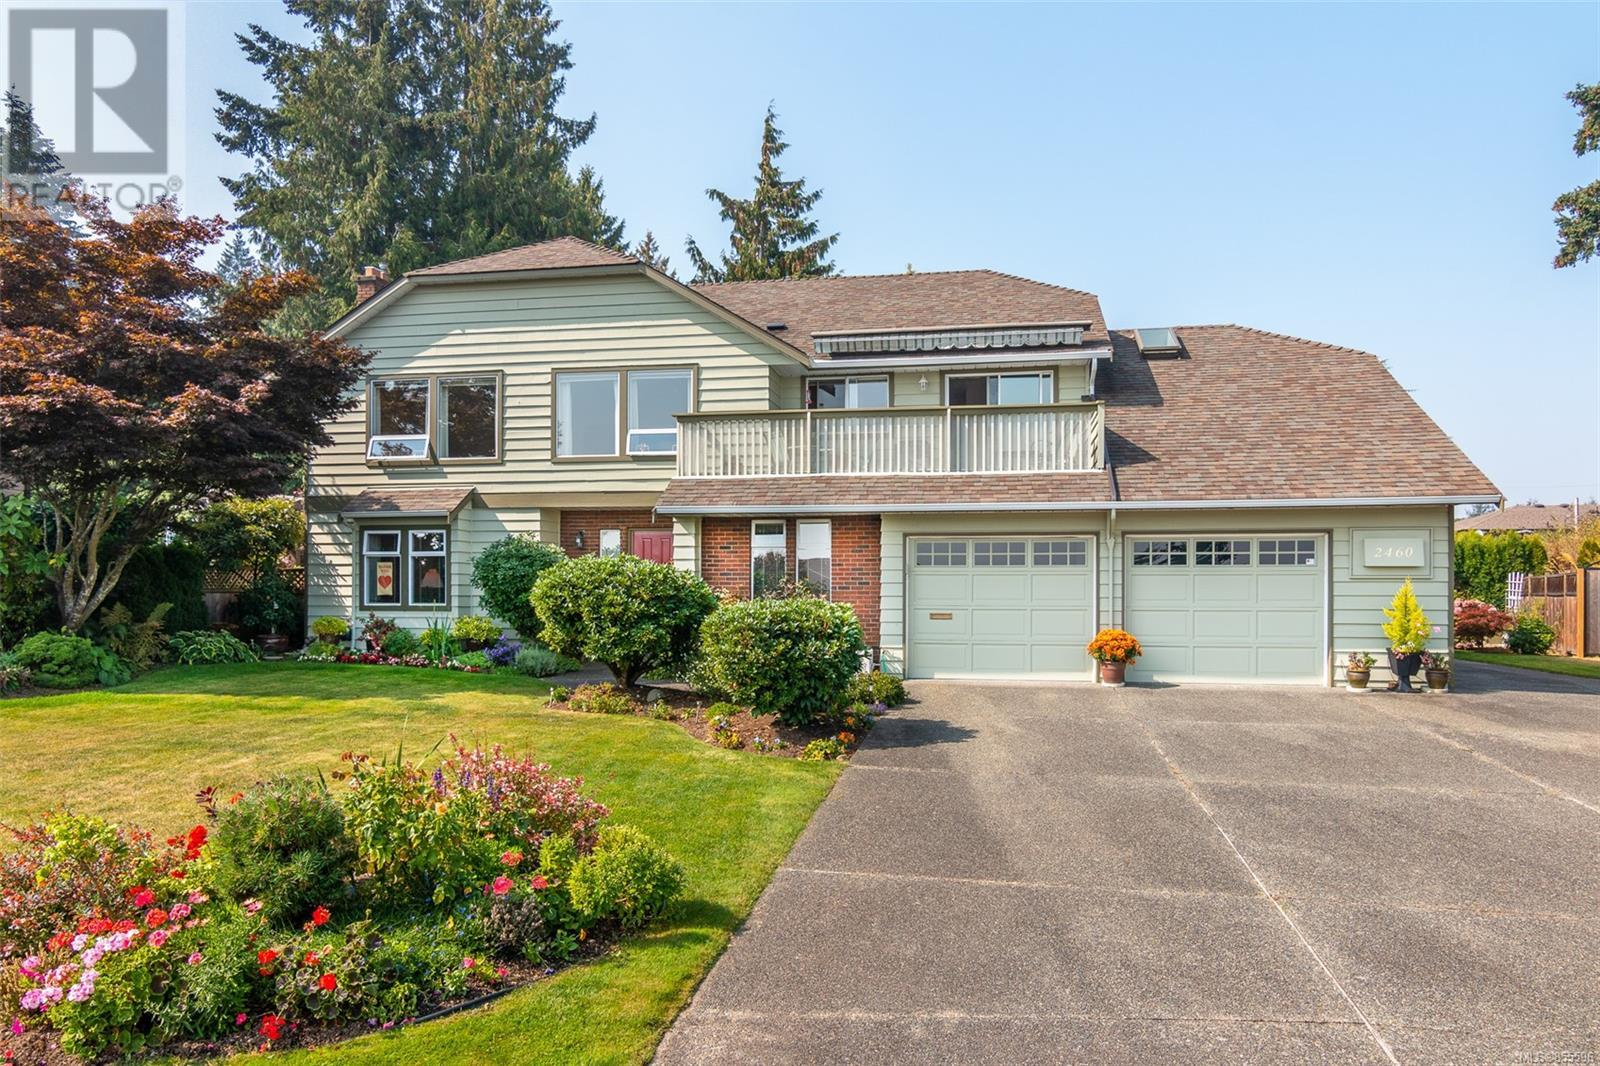 Removed: 2460 Costa Vista Place, Central Saanich, BC - Removed on 2020-09-26 00:03:19